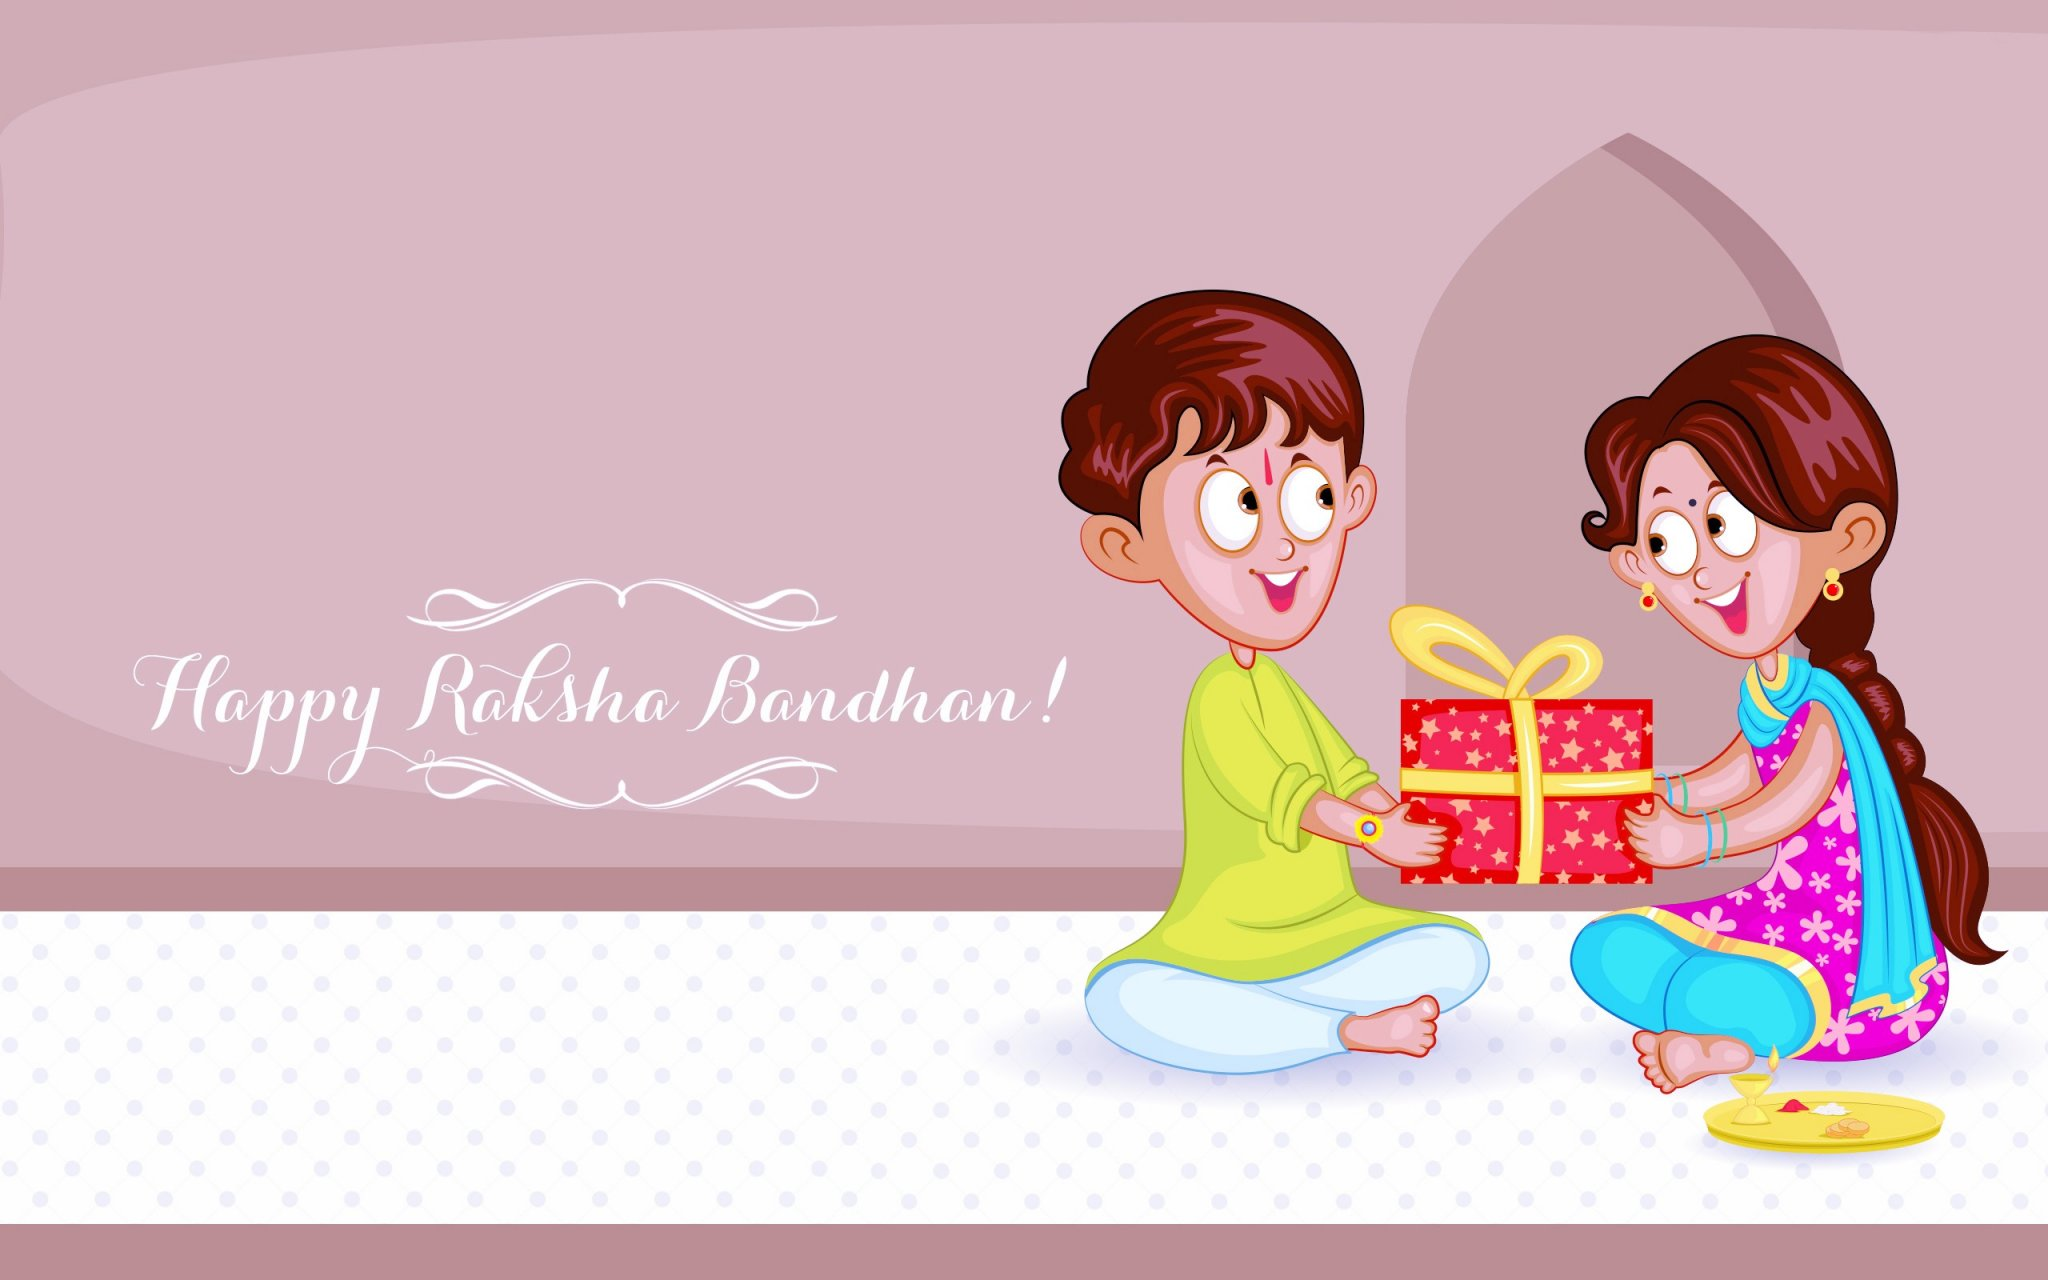 Happy Raksha Bandhan 2017- Date, Images, Quotes and Messages